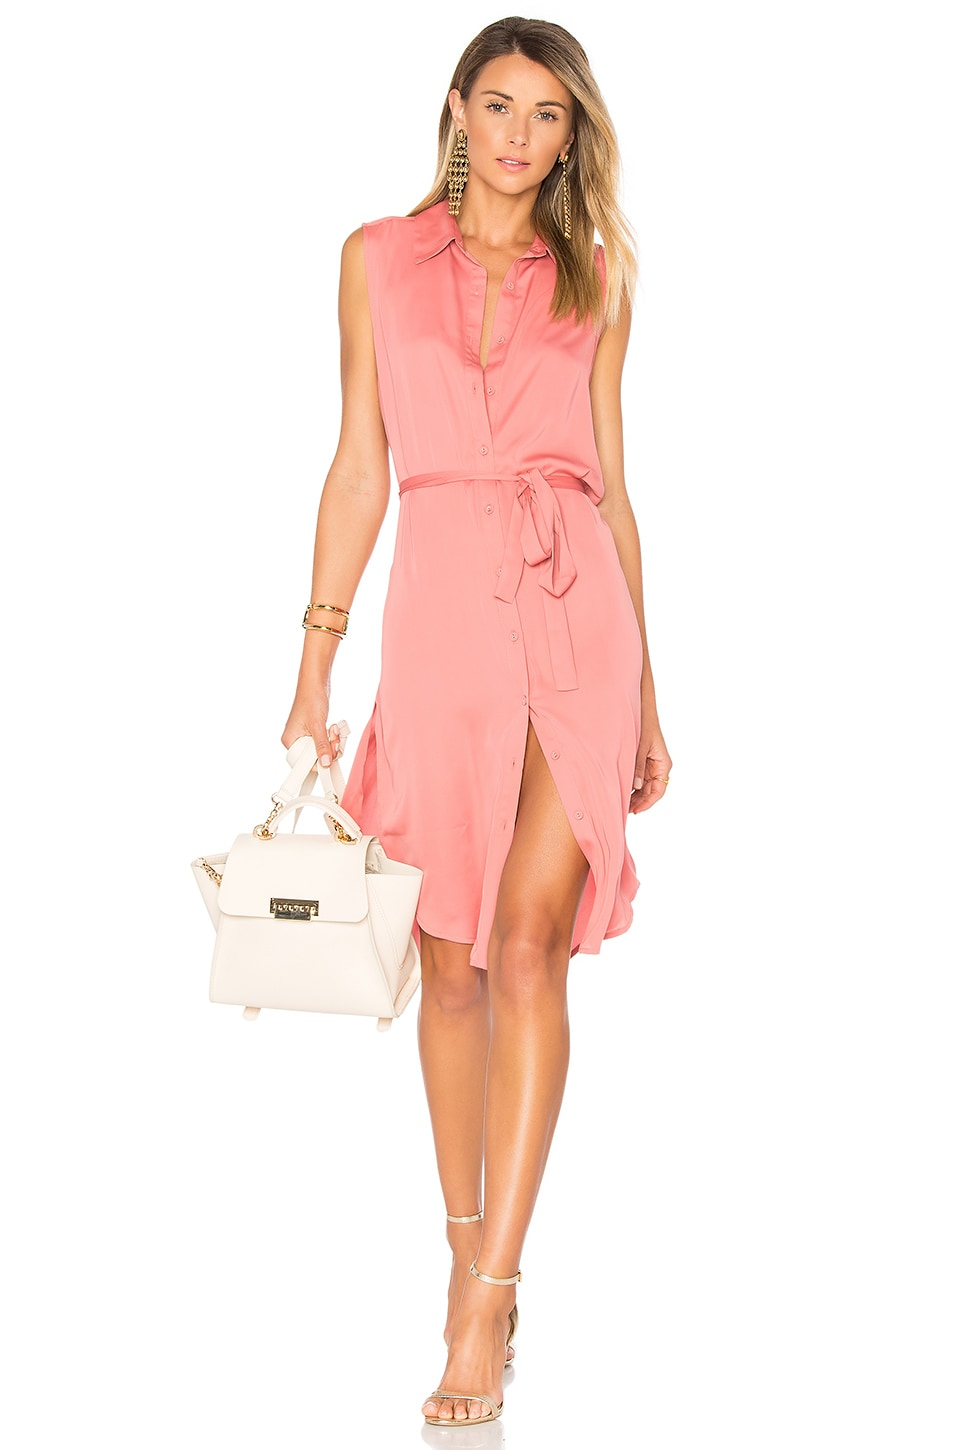 L'Academie The Sleeveless Midi Dress in English Rose